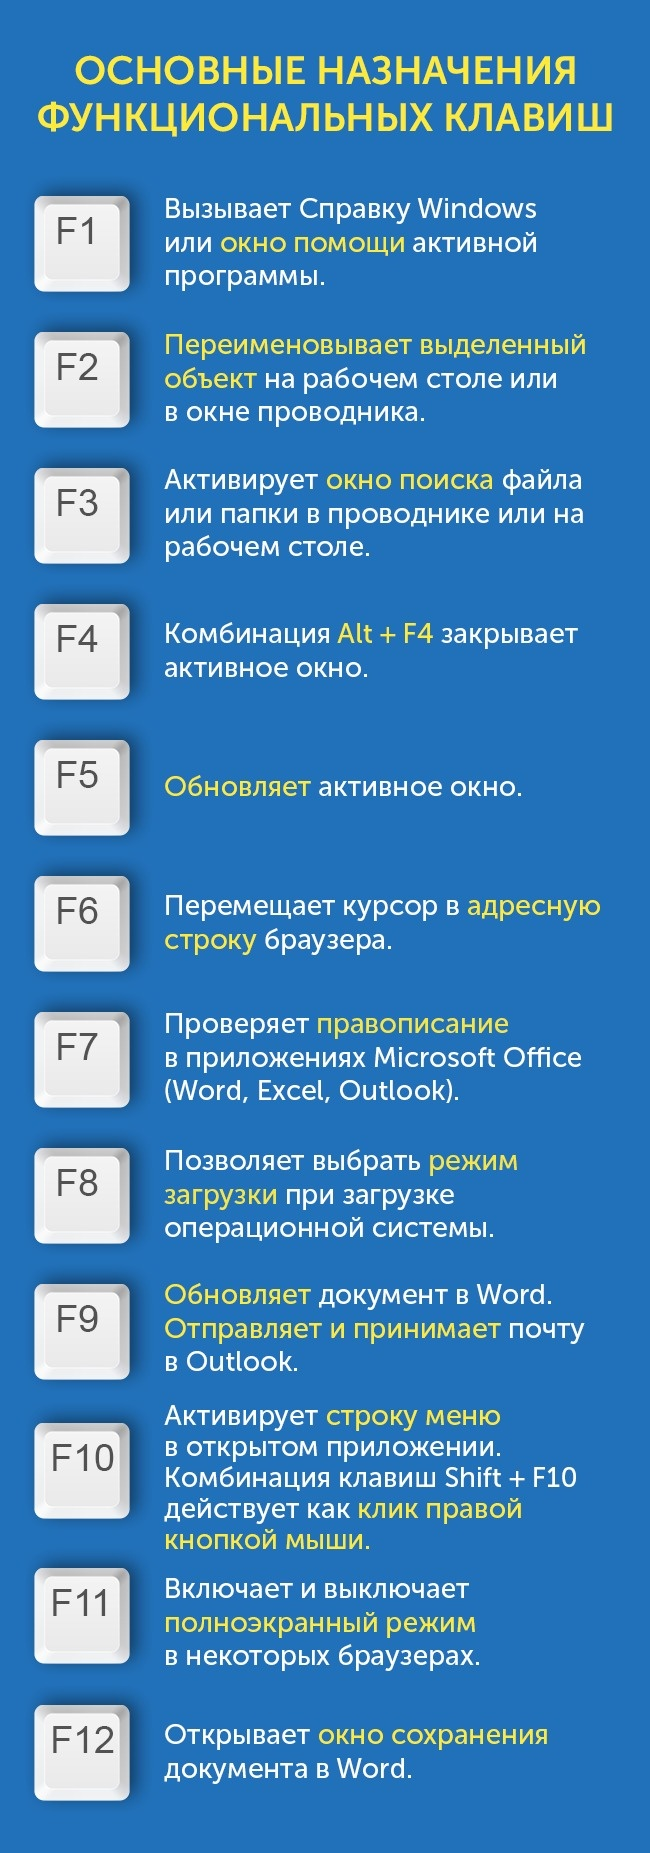 F1 function keys up to F12